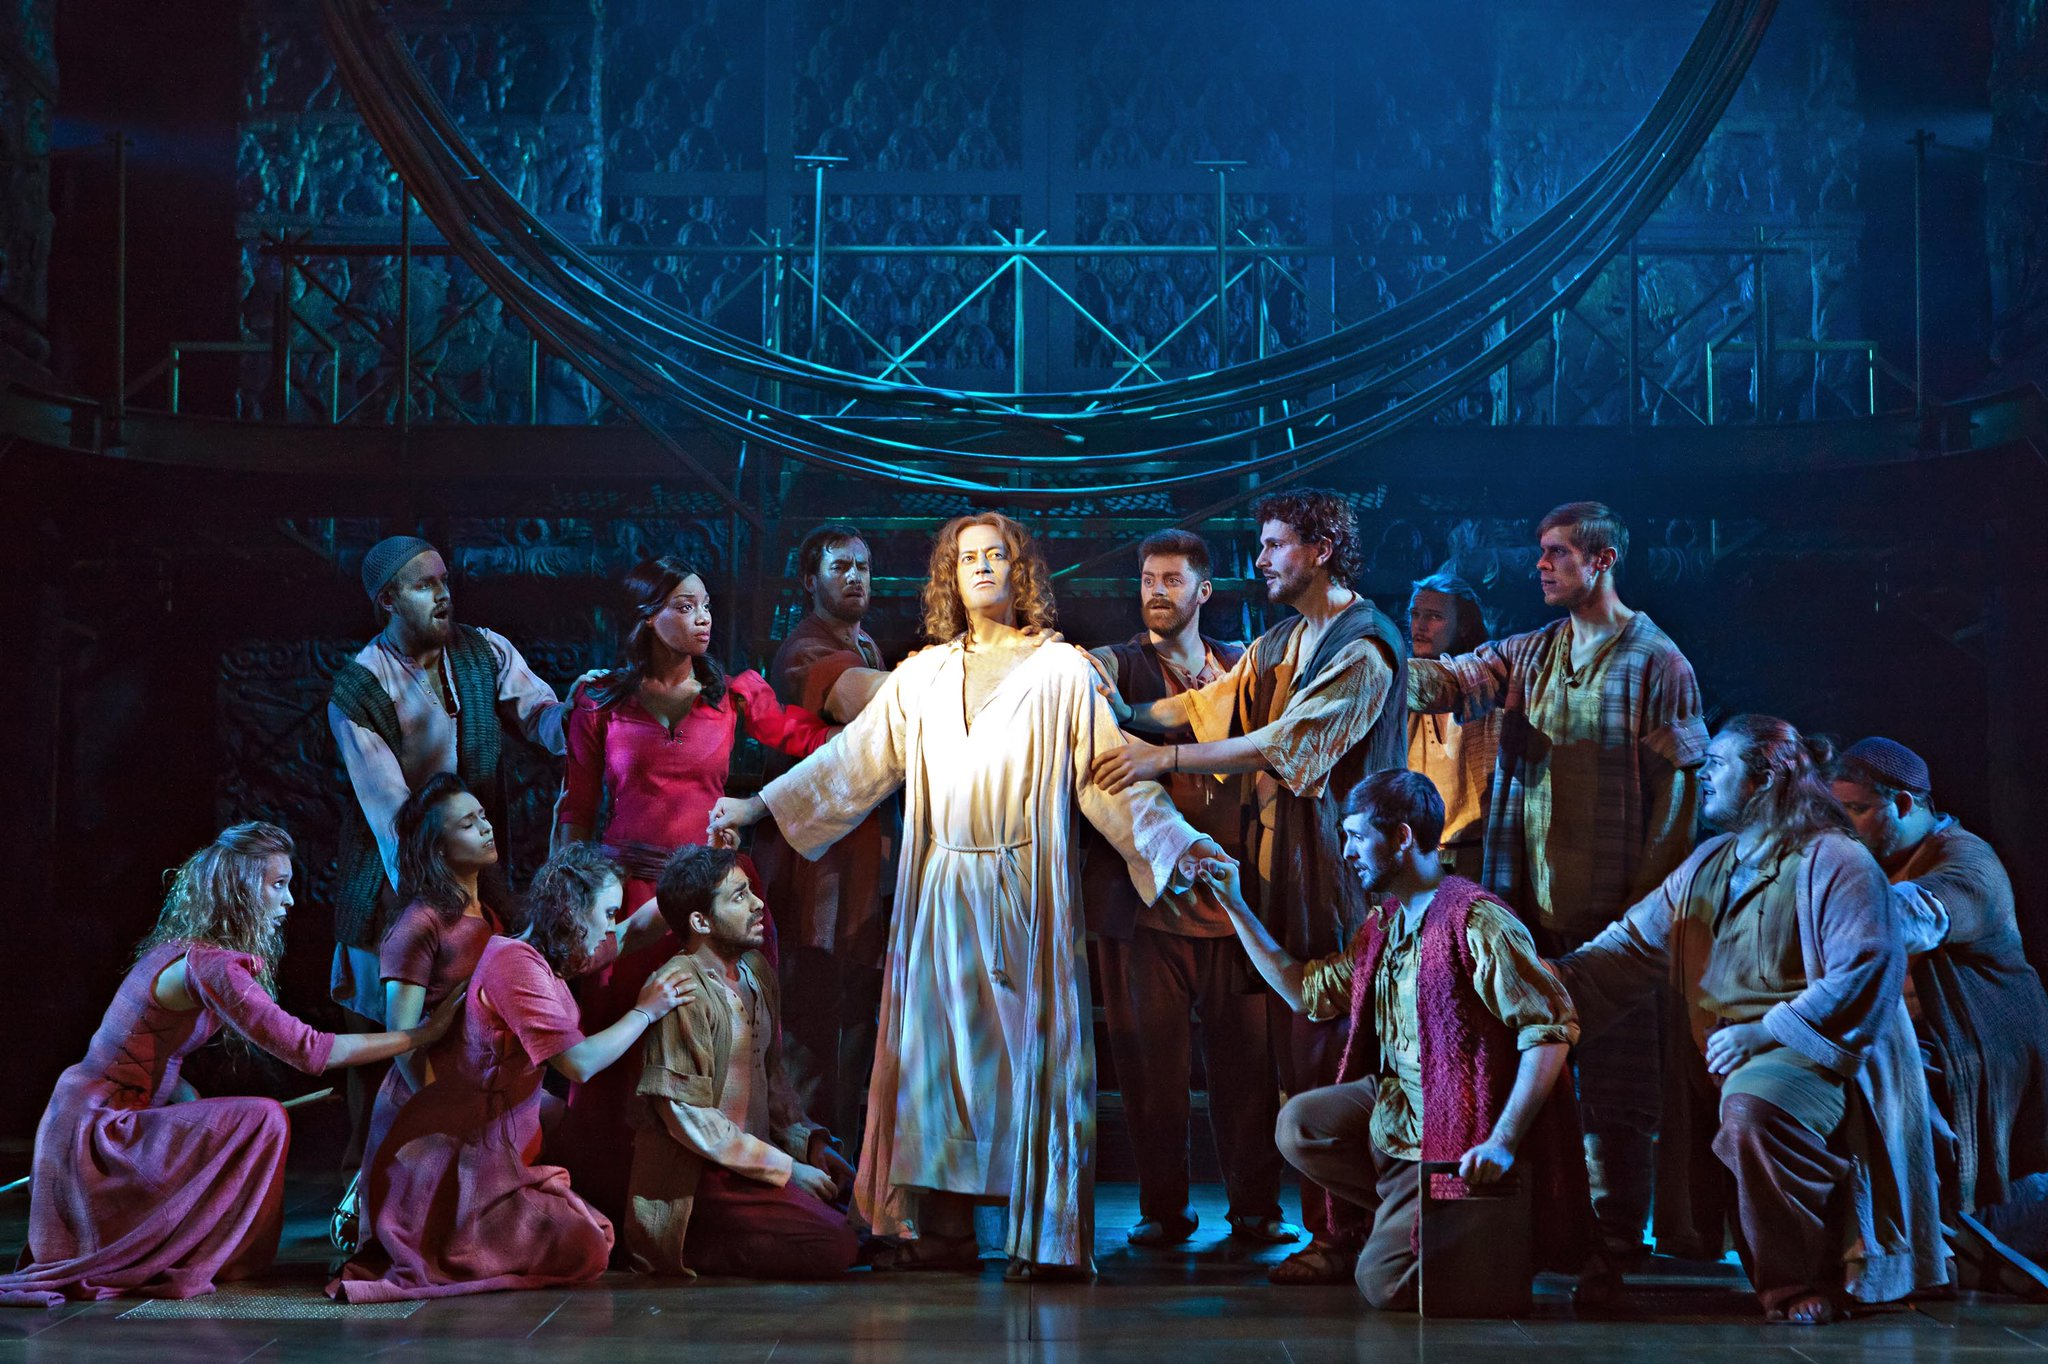 RT @InsideRhyl: Check out my #review of @JCSTheMusical at @VenueCymru staring @RachelASongs here http://t.co/BqIZlIQuH0 http://t.co/M1U1HZl…